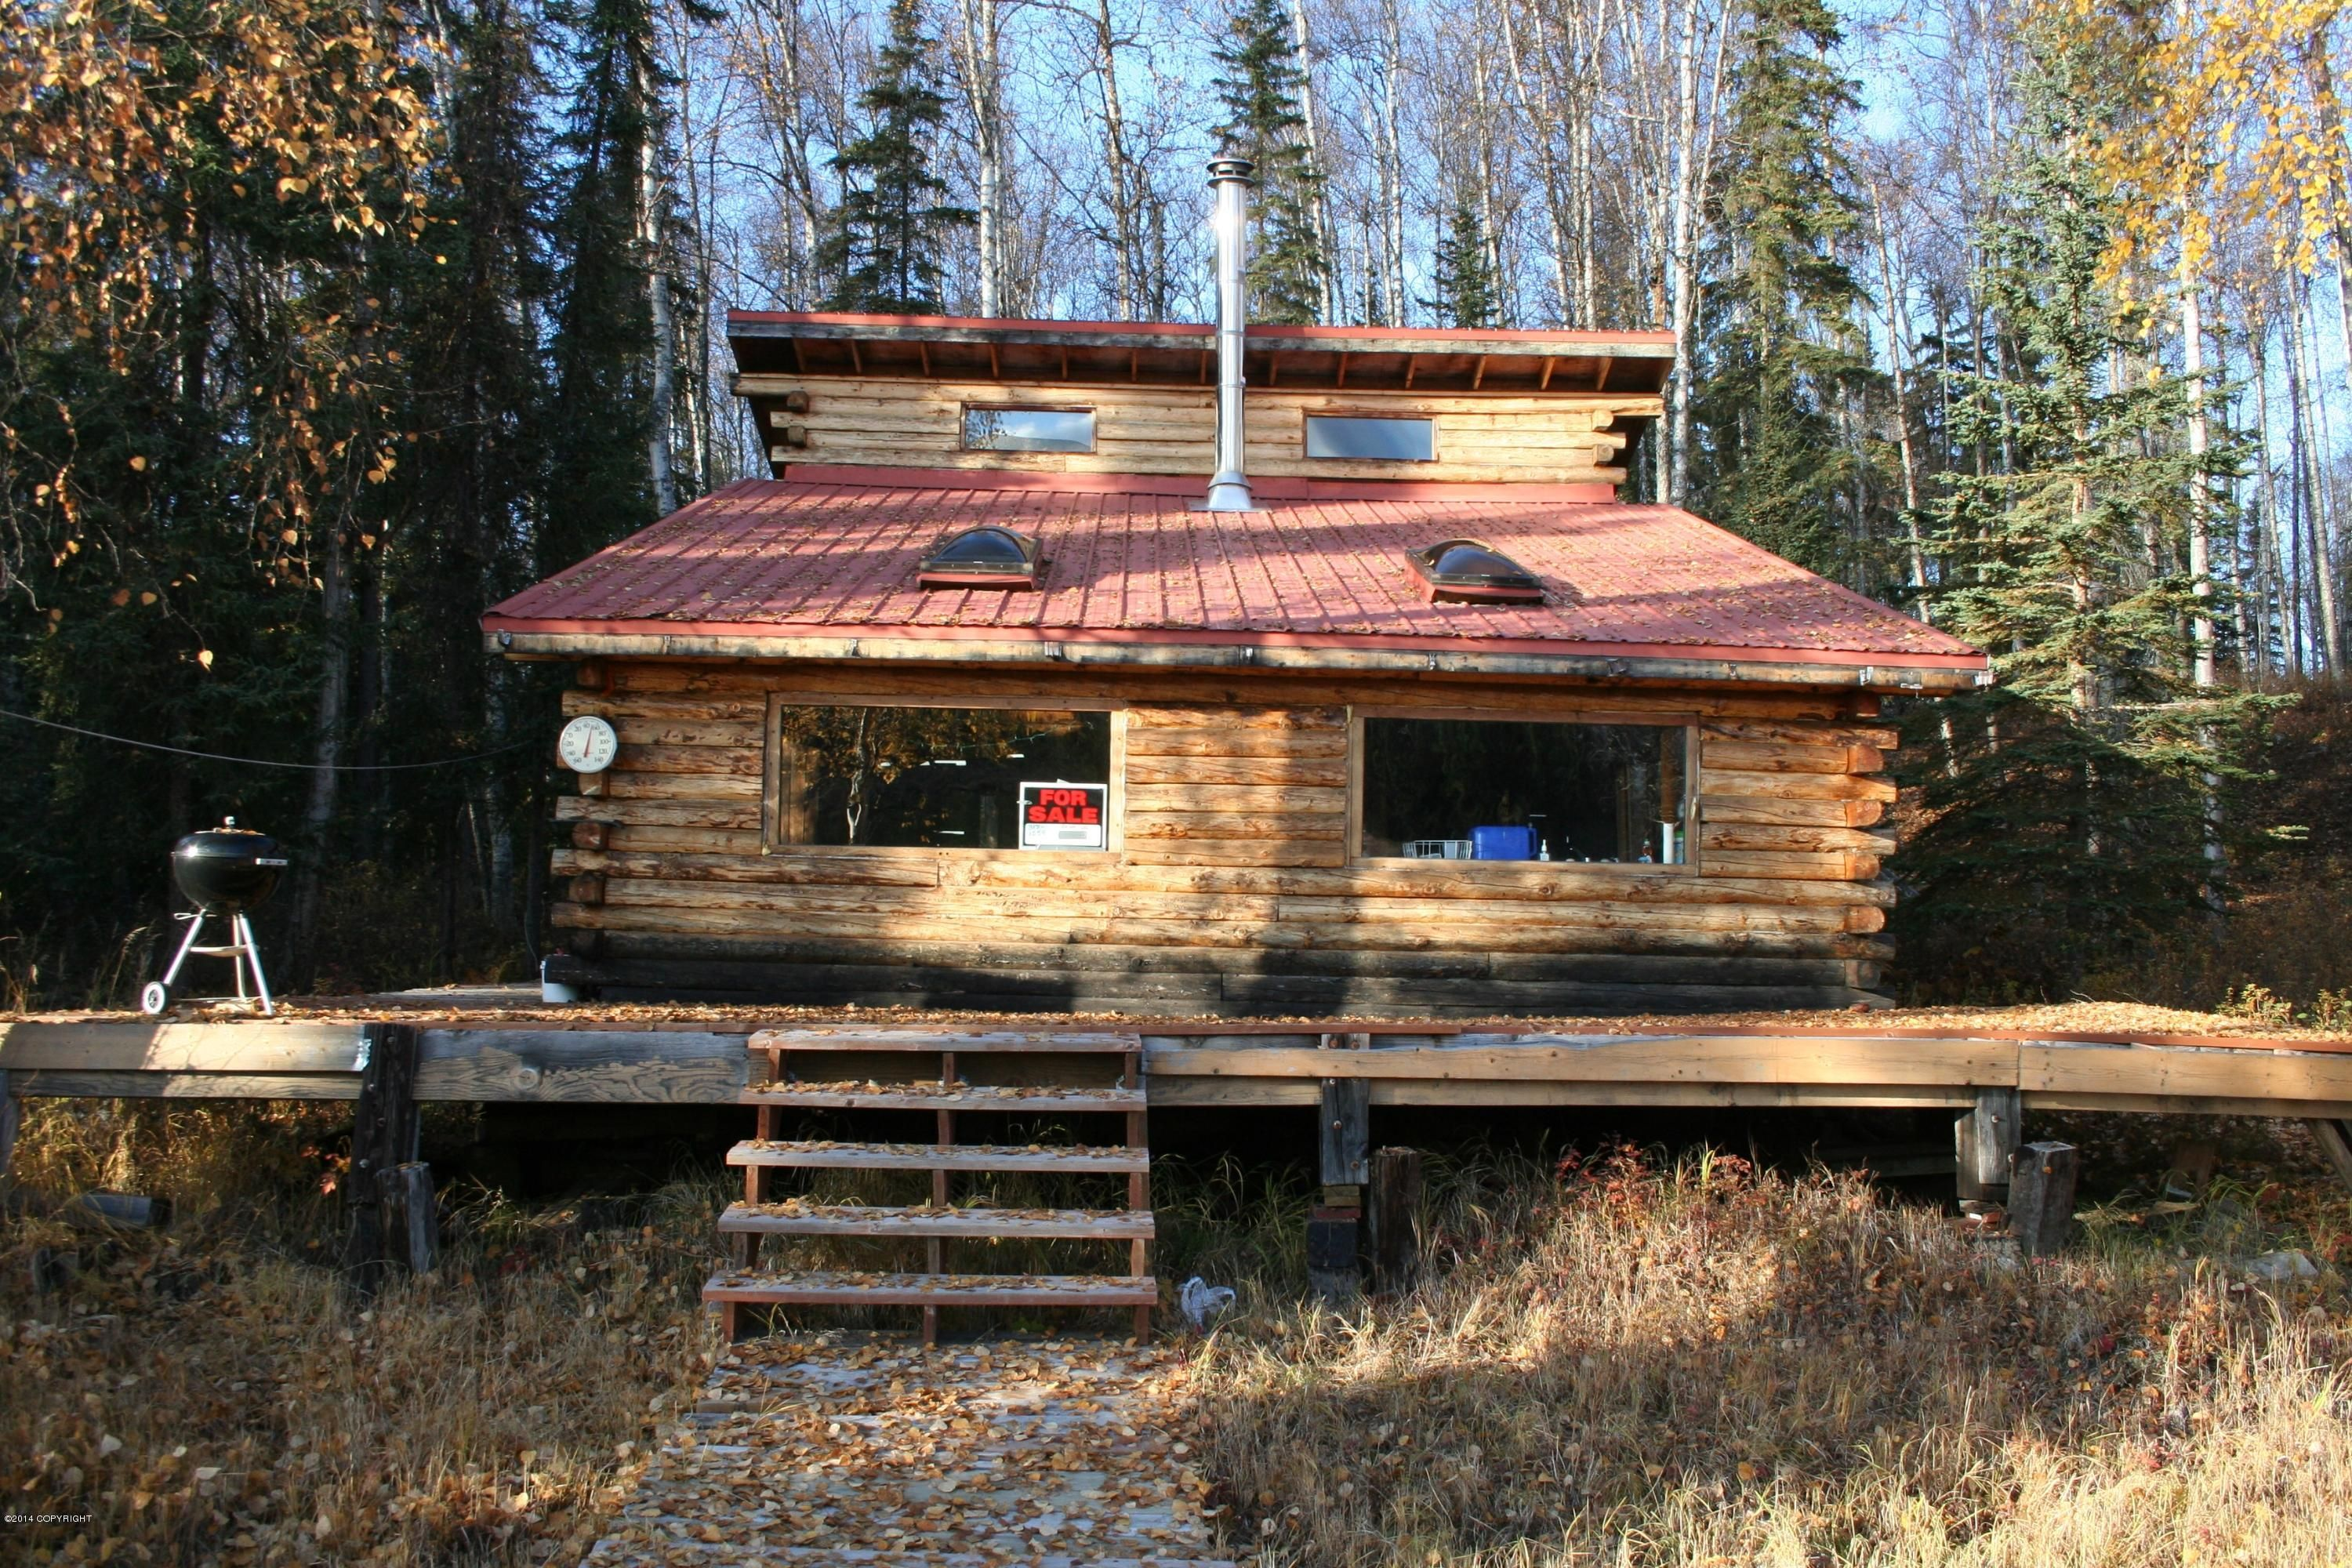 listing cottages river for cabins alaska steelhead main property sale pic ca in hwy big flat